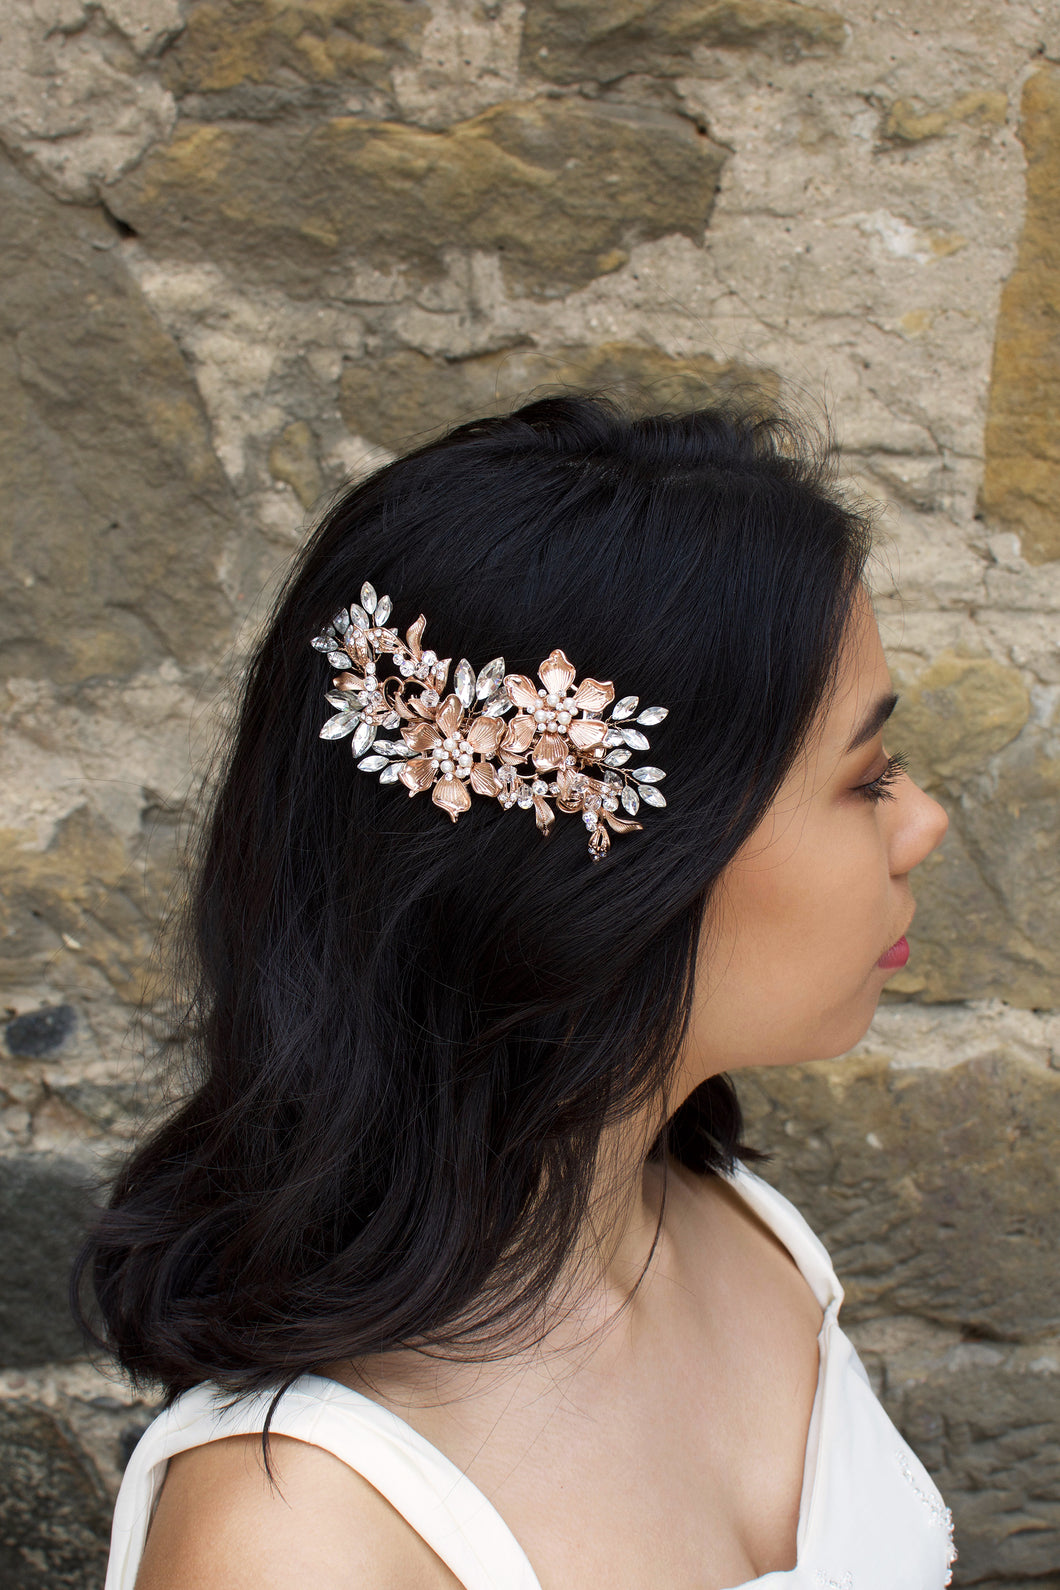 A dark haired model wears a Rose Gold flower comb on the side of her head. A stone wall is the background